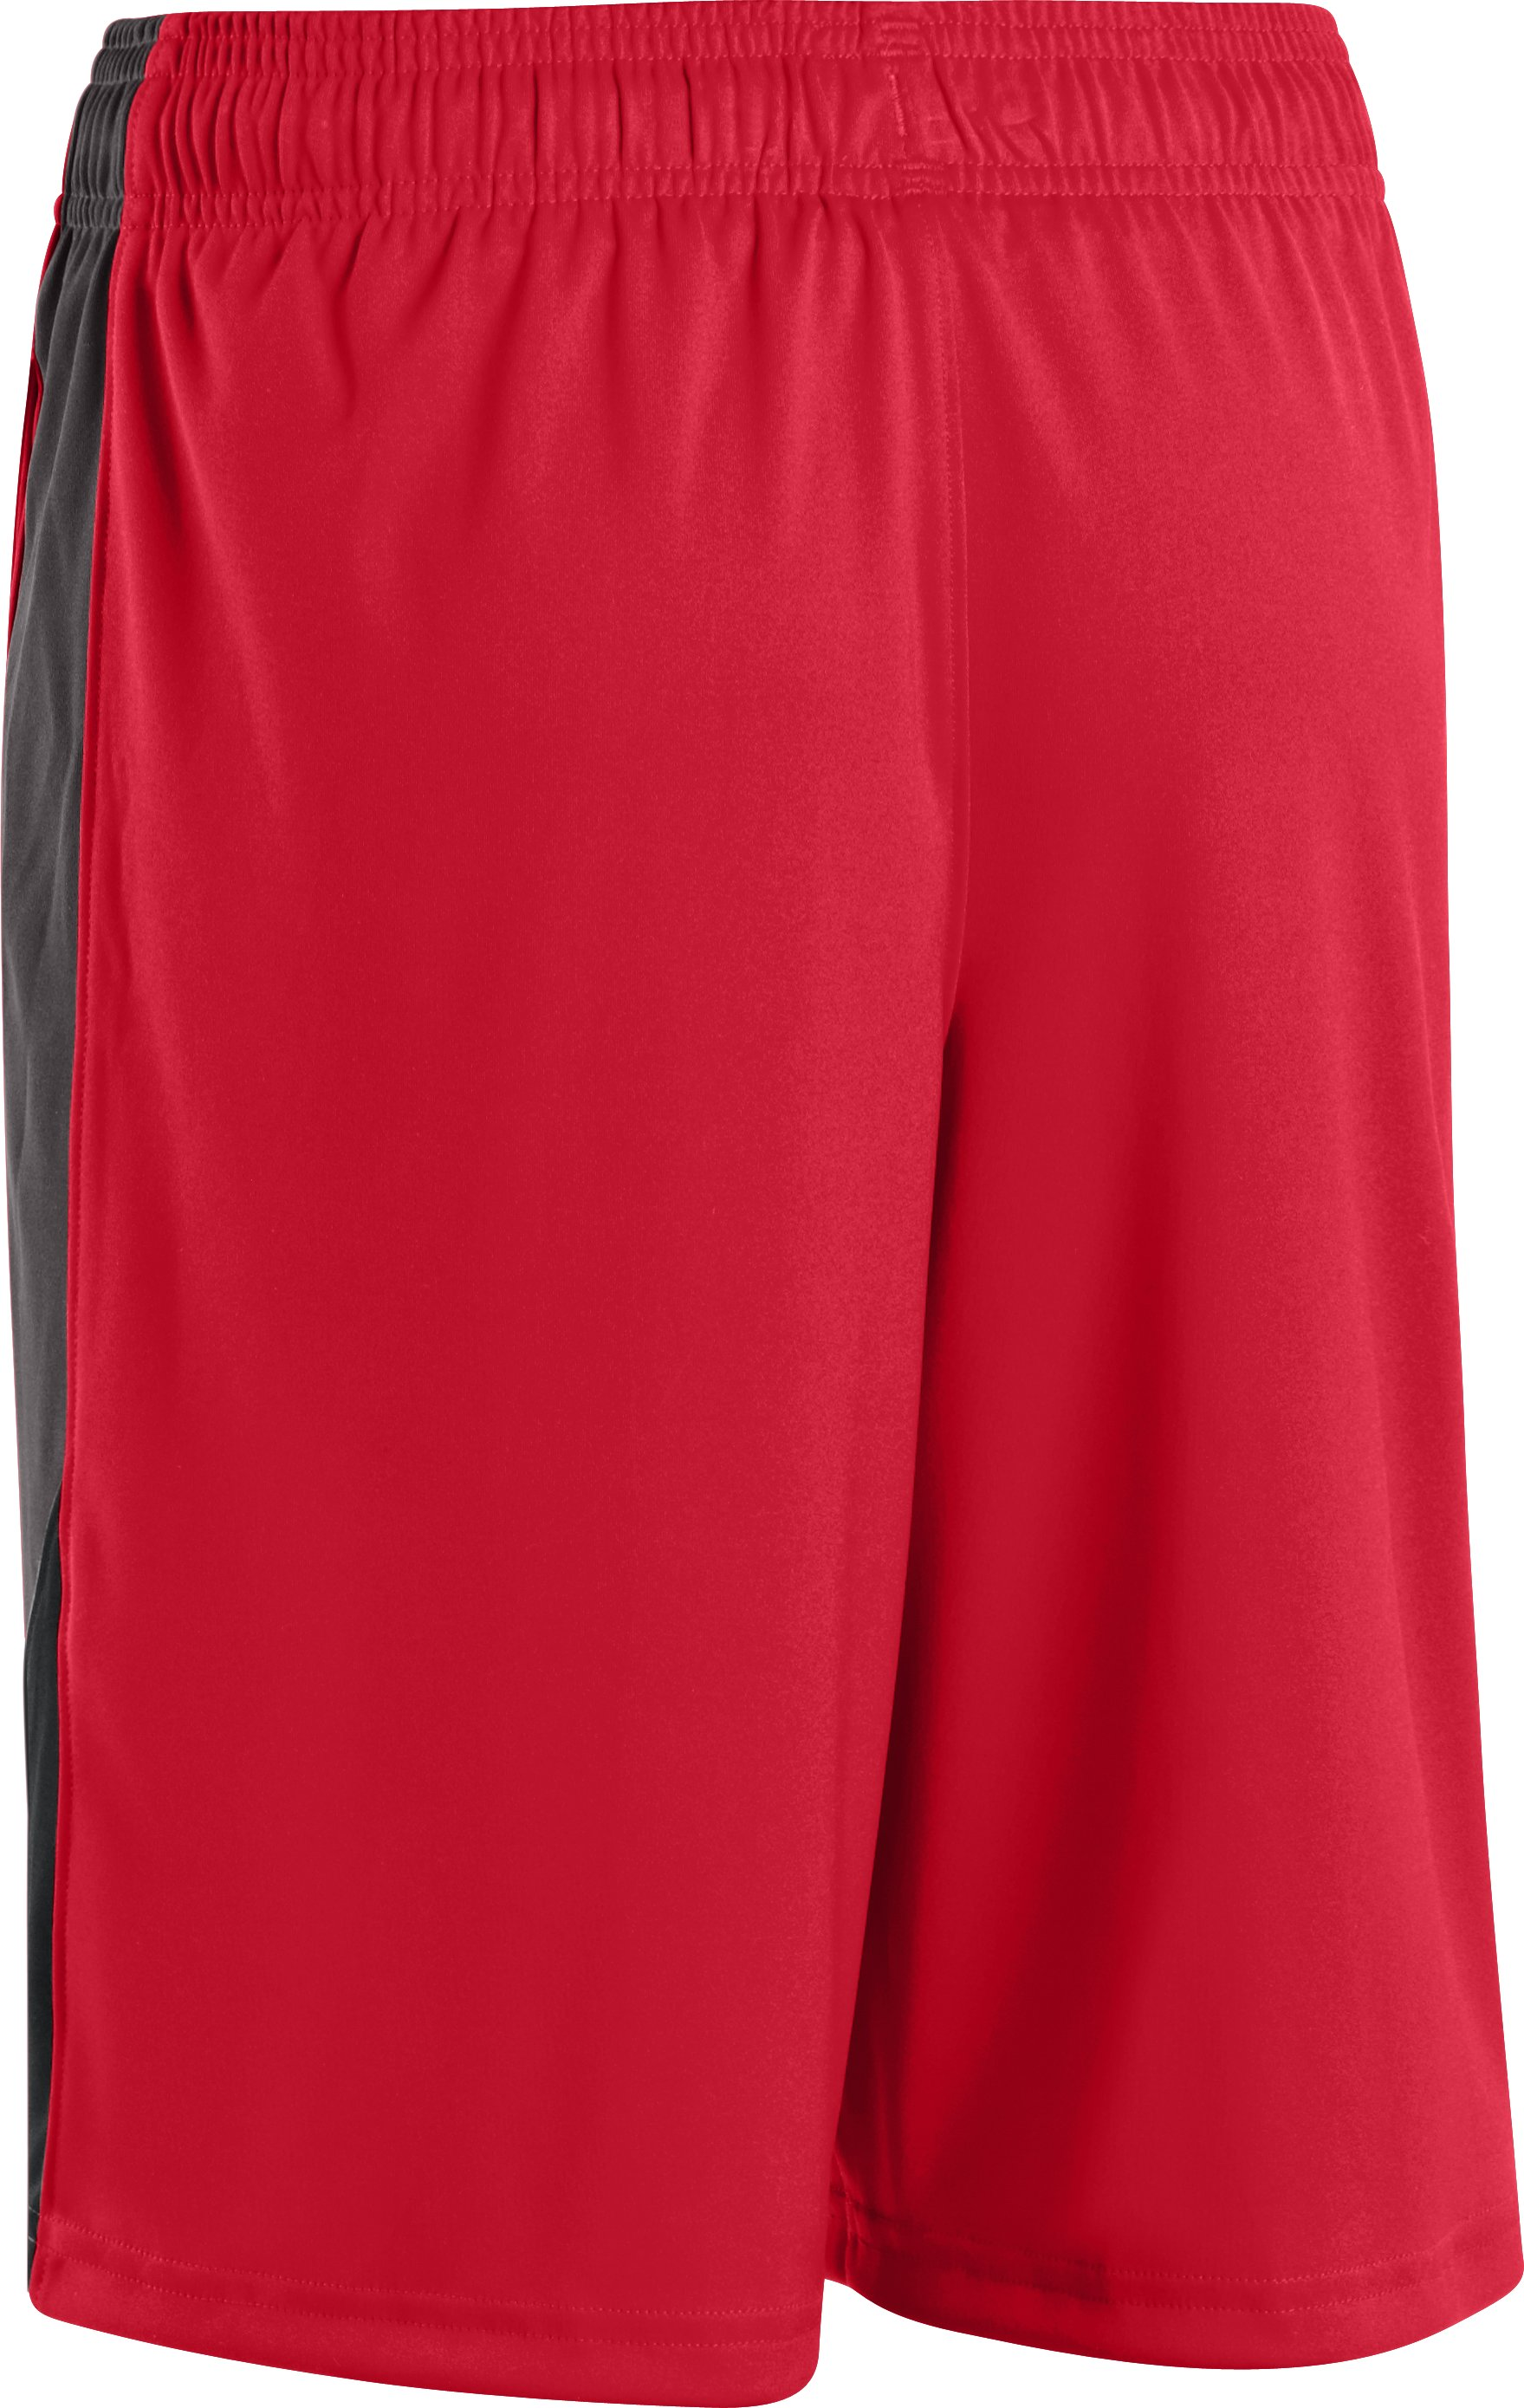 Boys' UA Extreme Shorts, Red, undefined